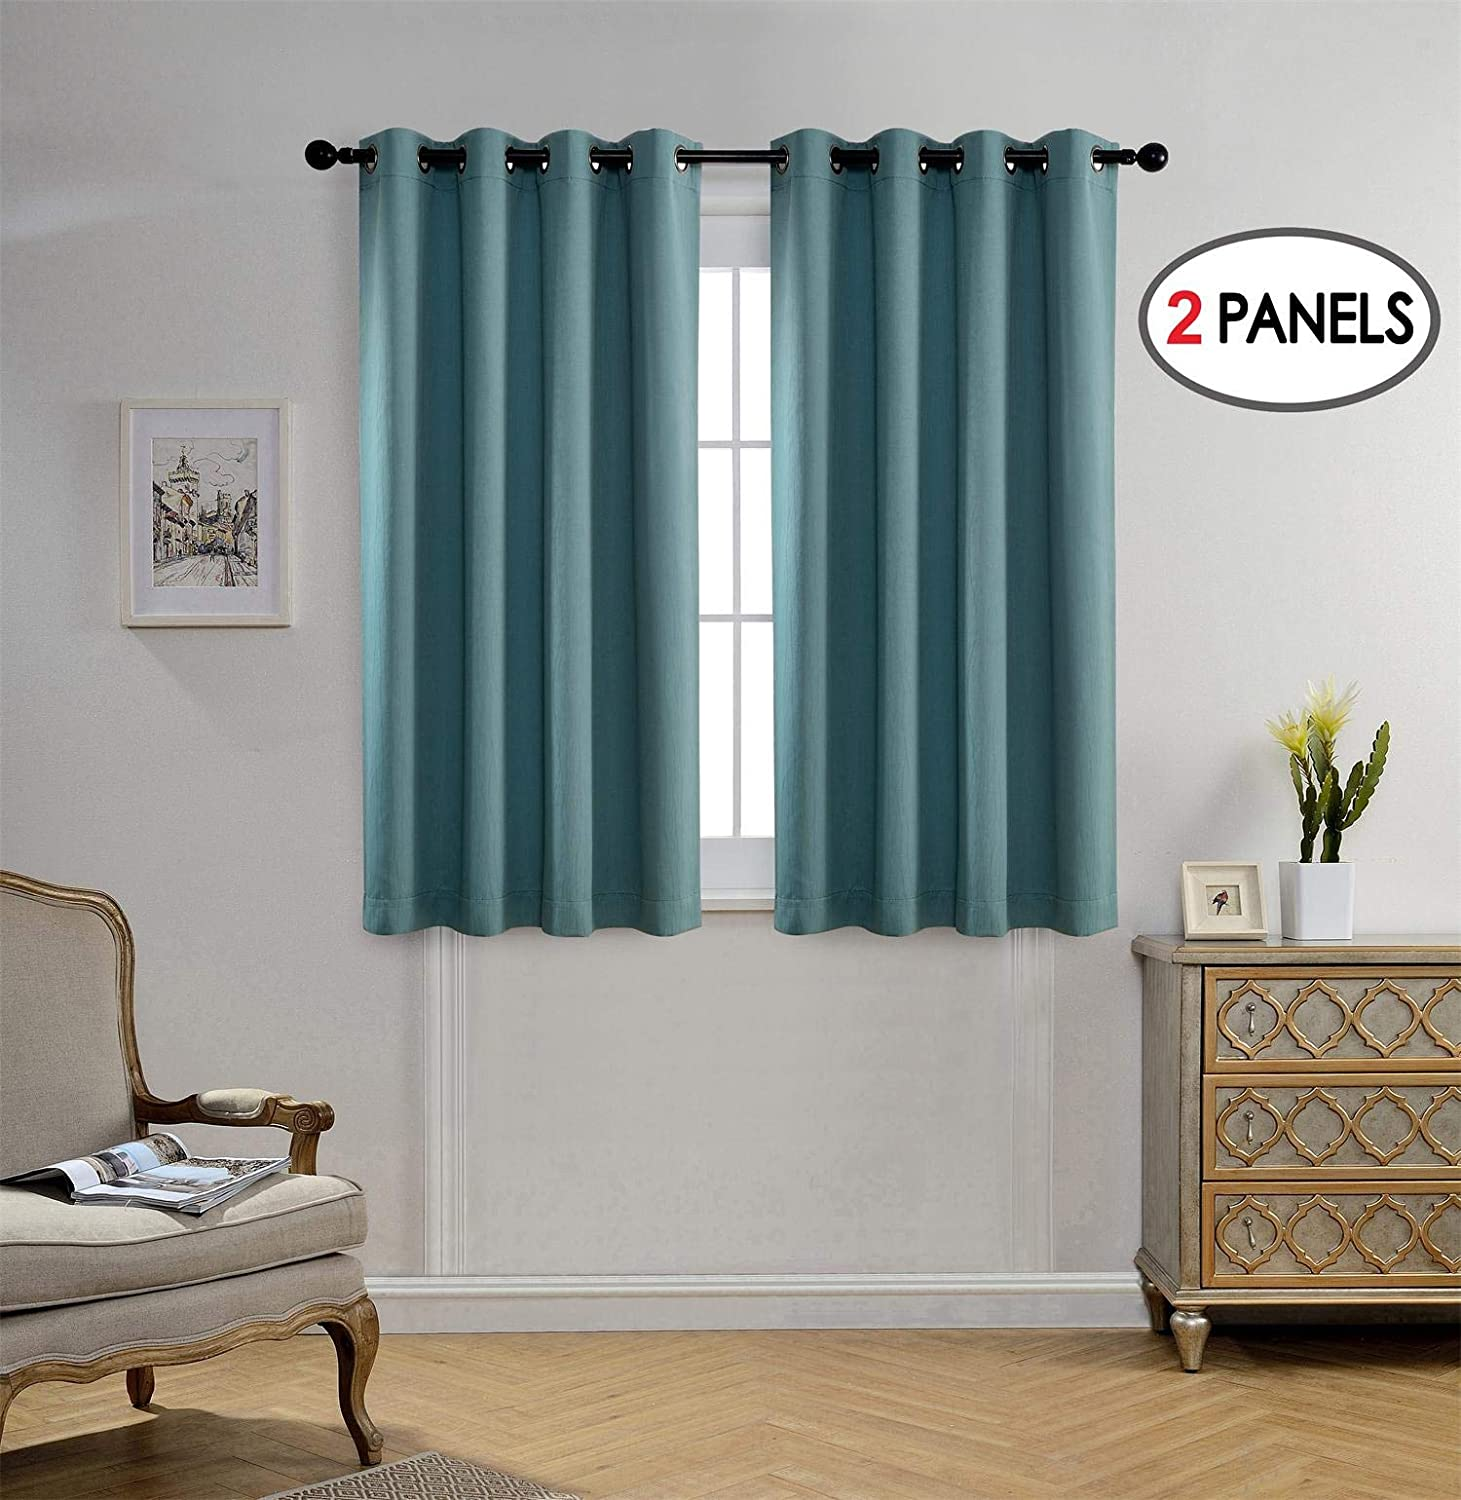 Miuco Blackout Curtains Room Darkening Curtains Textured Grommet Curtains for Window Treatment 2 Panels 52x63 Inch Long Teal